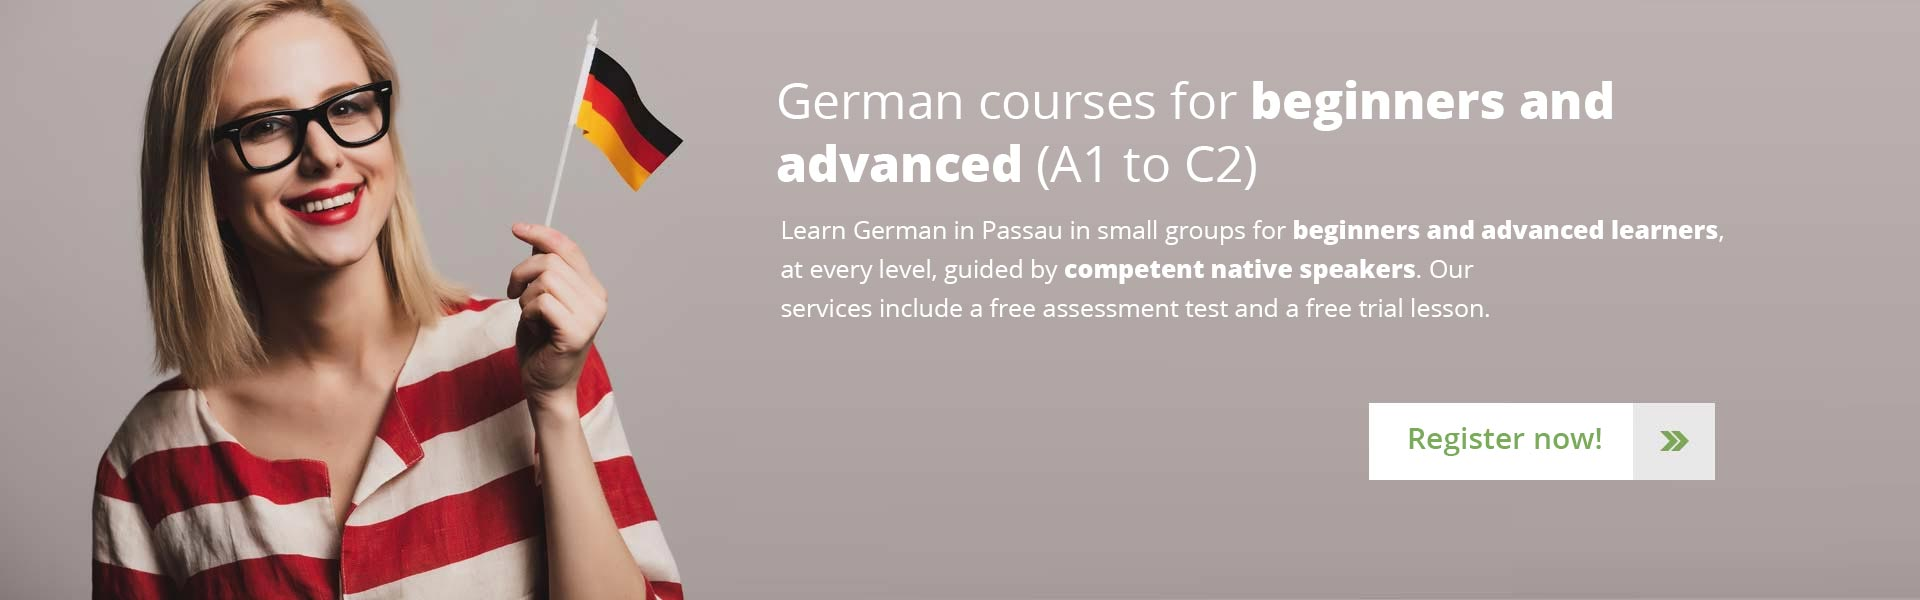 Learn German in Passau – German courses for beginners and advanced (A1 to C2)